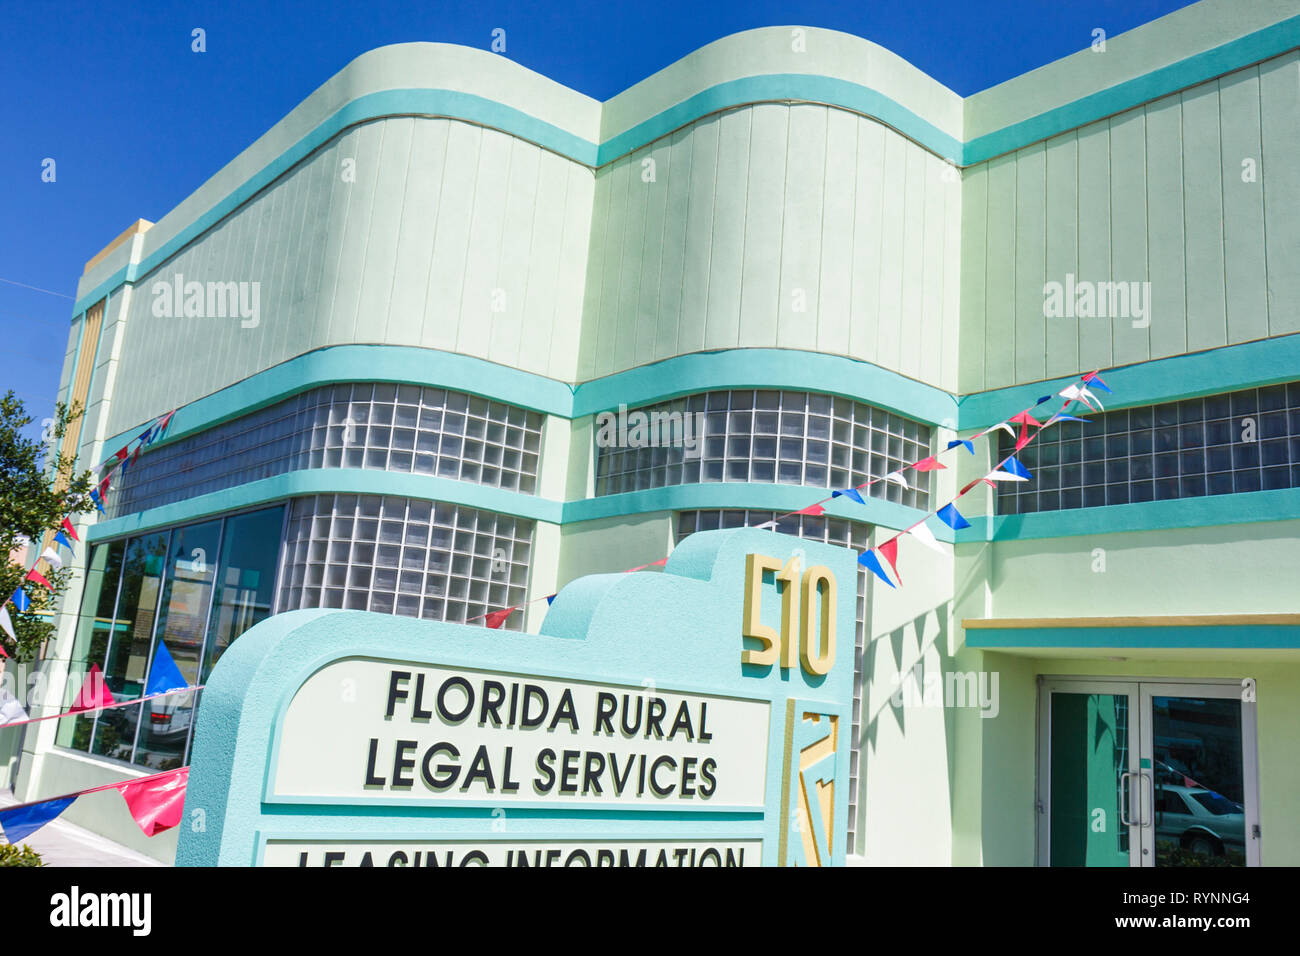 Florida Fort Ft. Pierce building commercial real estate for rent sign business glass block Florida Rural Legal Services non-prof - Stock Image